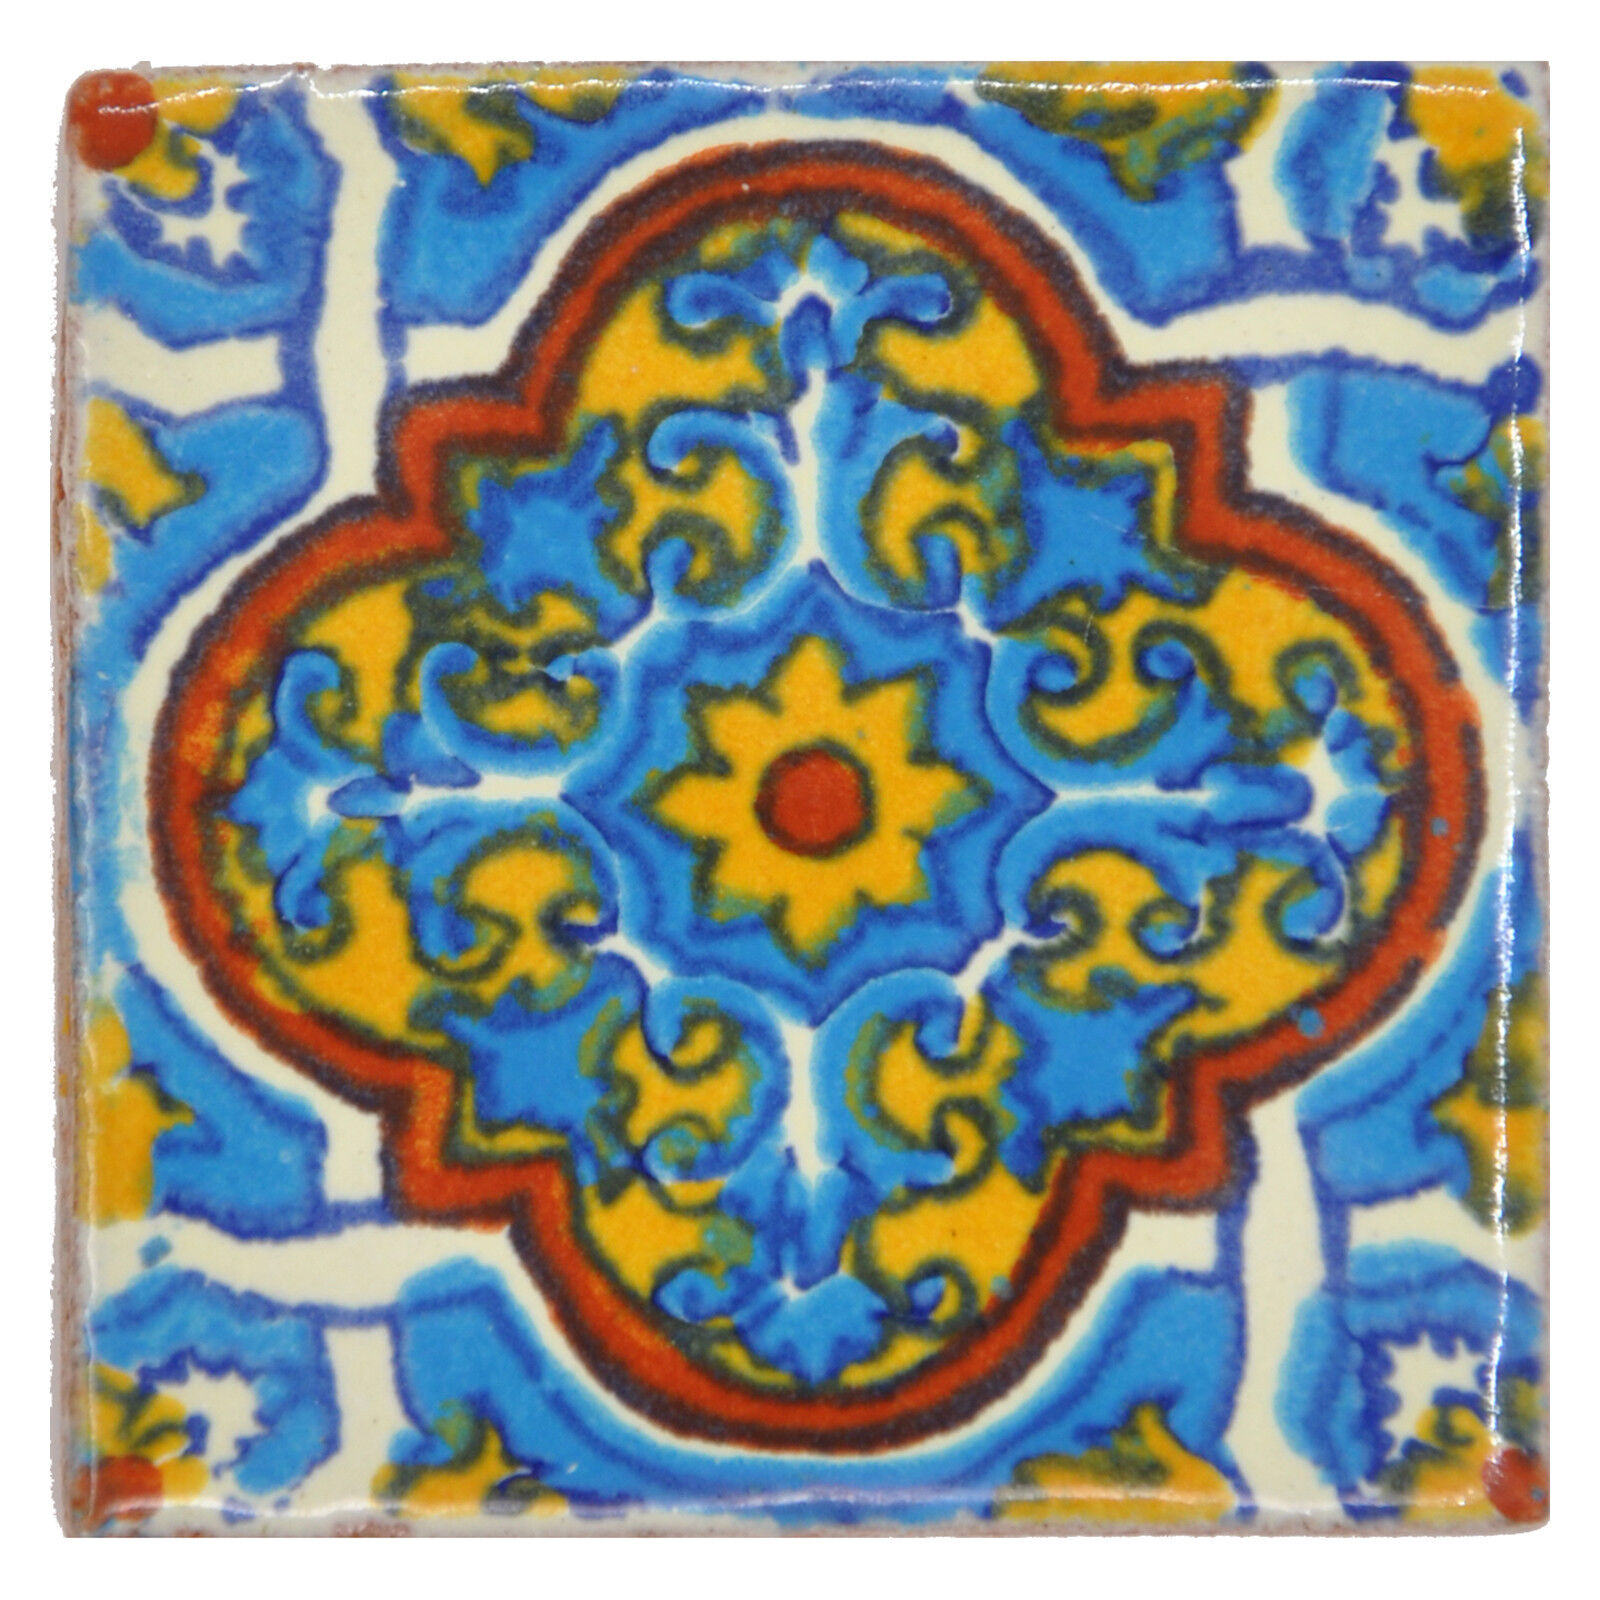 Fairly Traded Handmade Ceramic Mexican Talavera Tile 5cm - Valentina